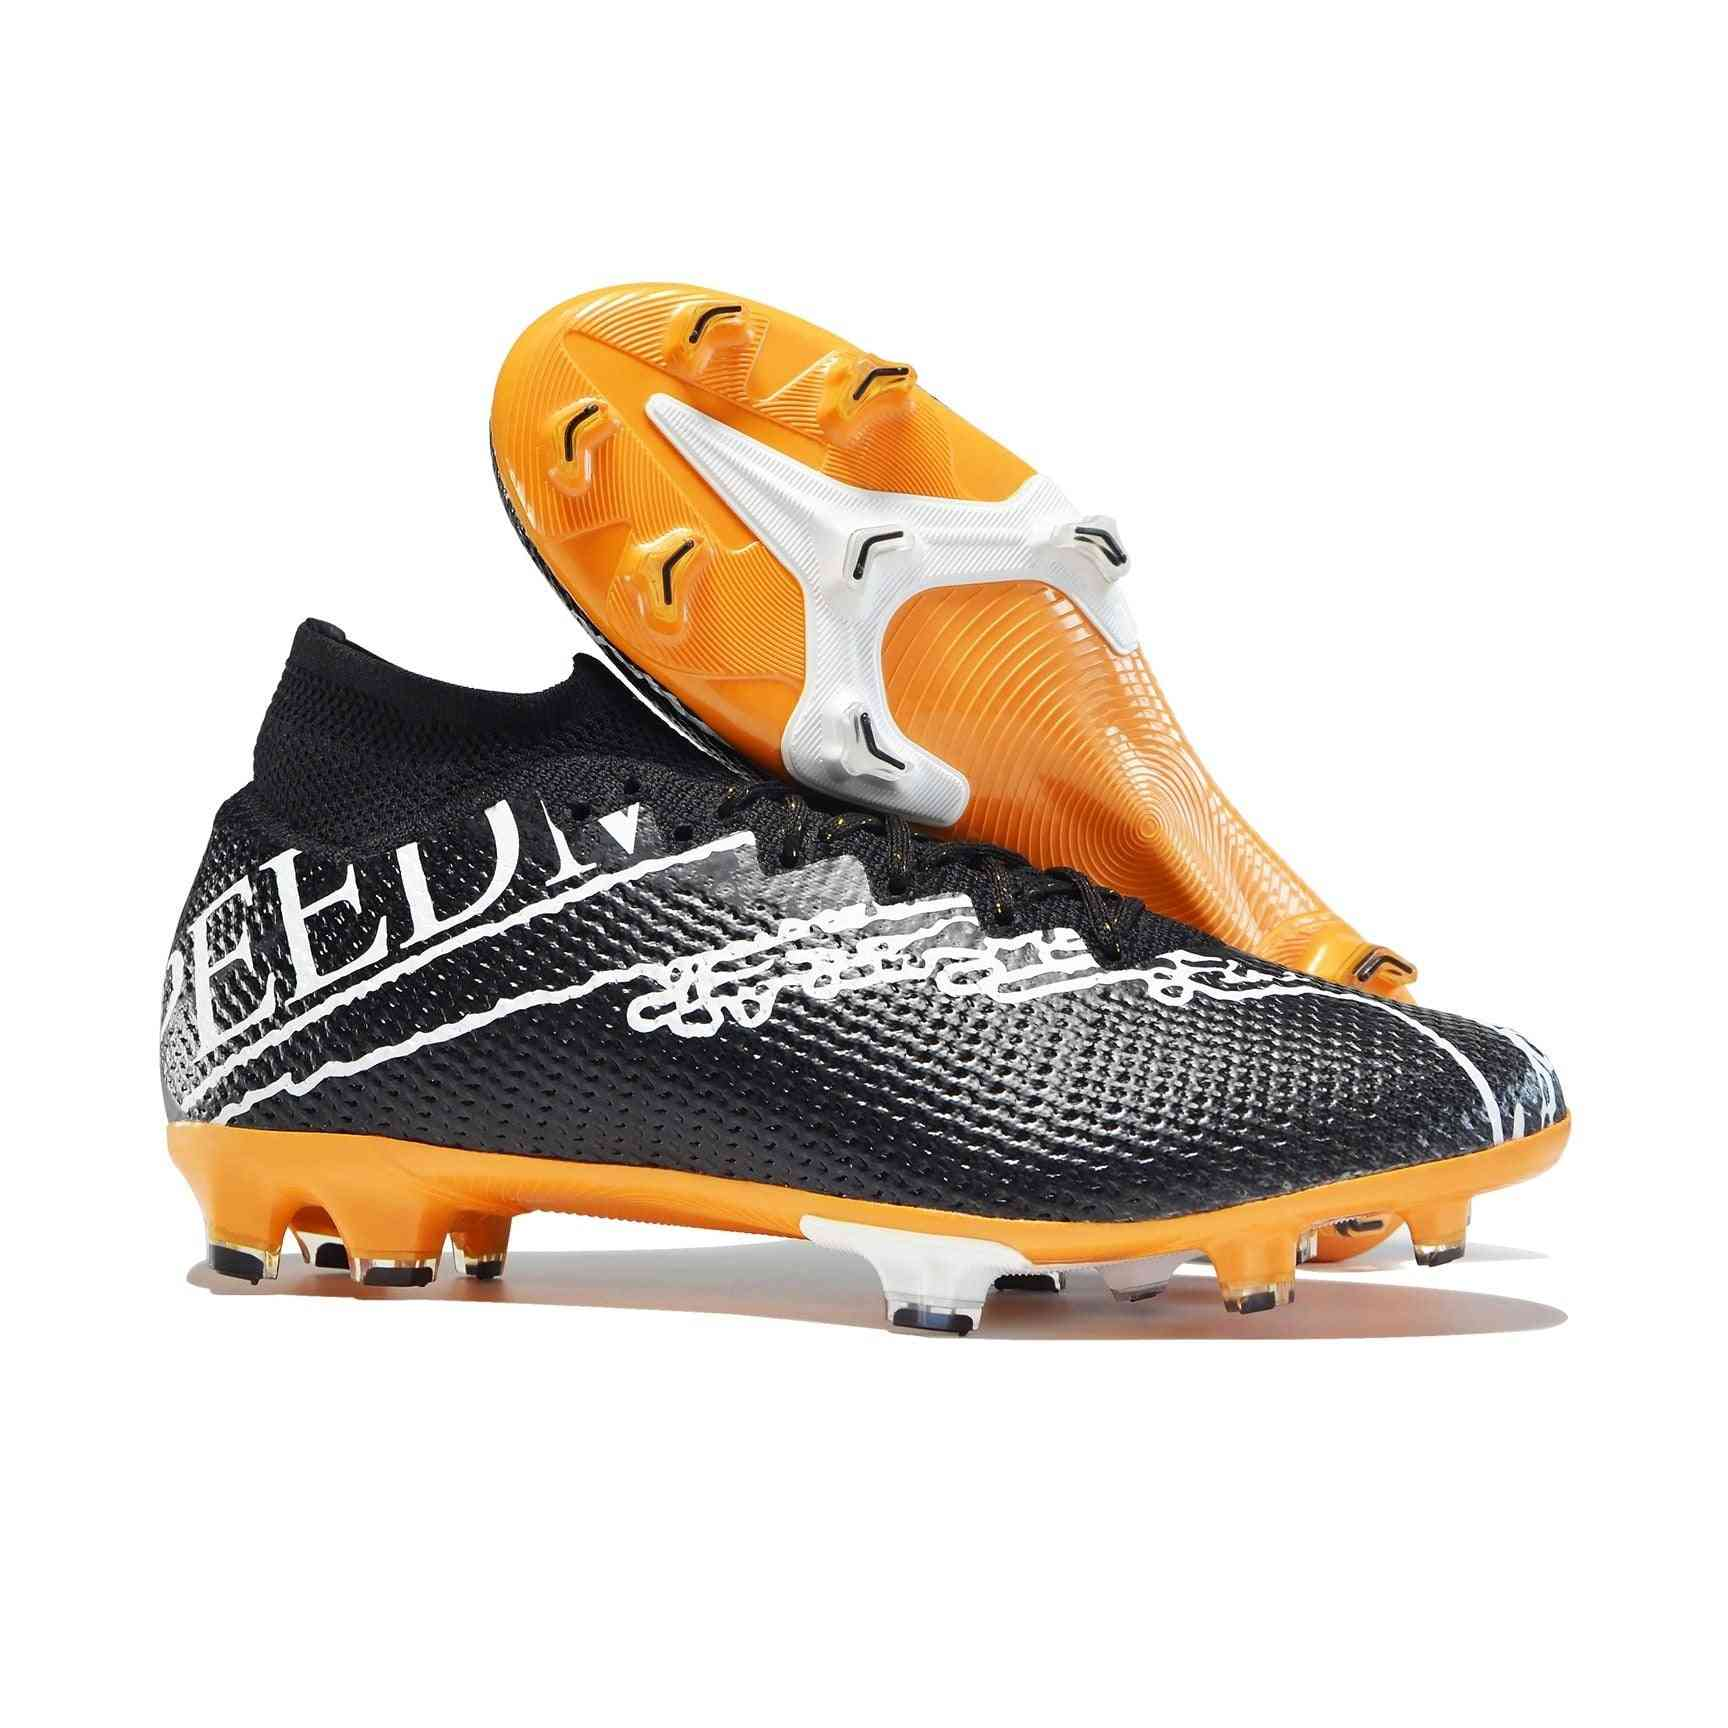 Football Boots, Training Professional Soccer Cleats High Ankle Sport Shoes